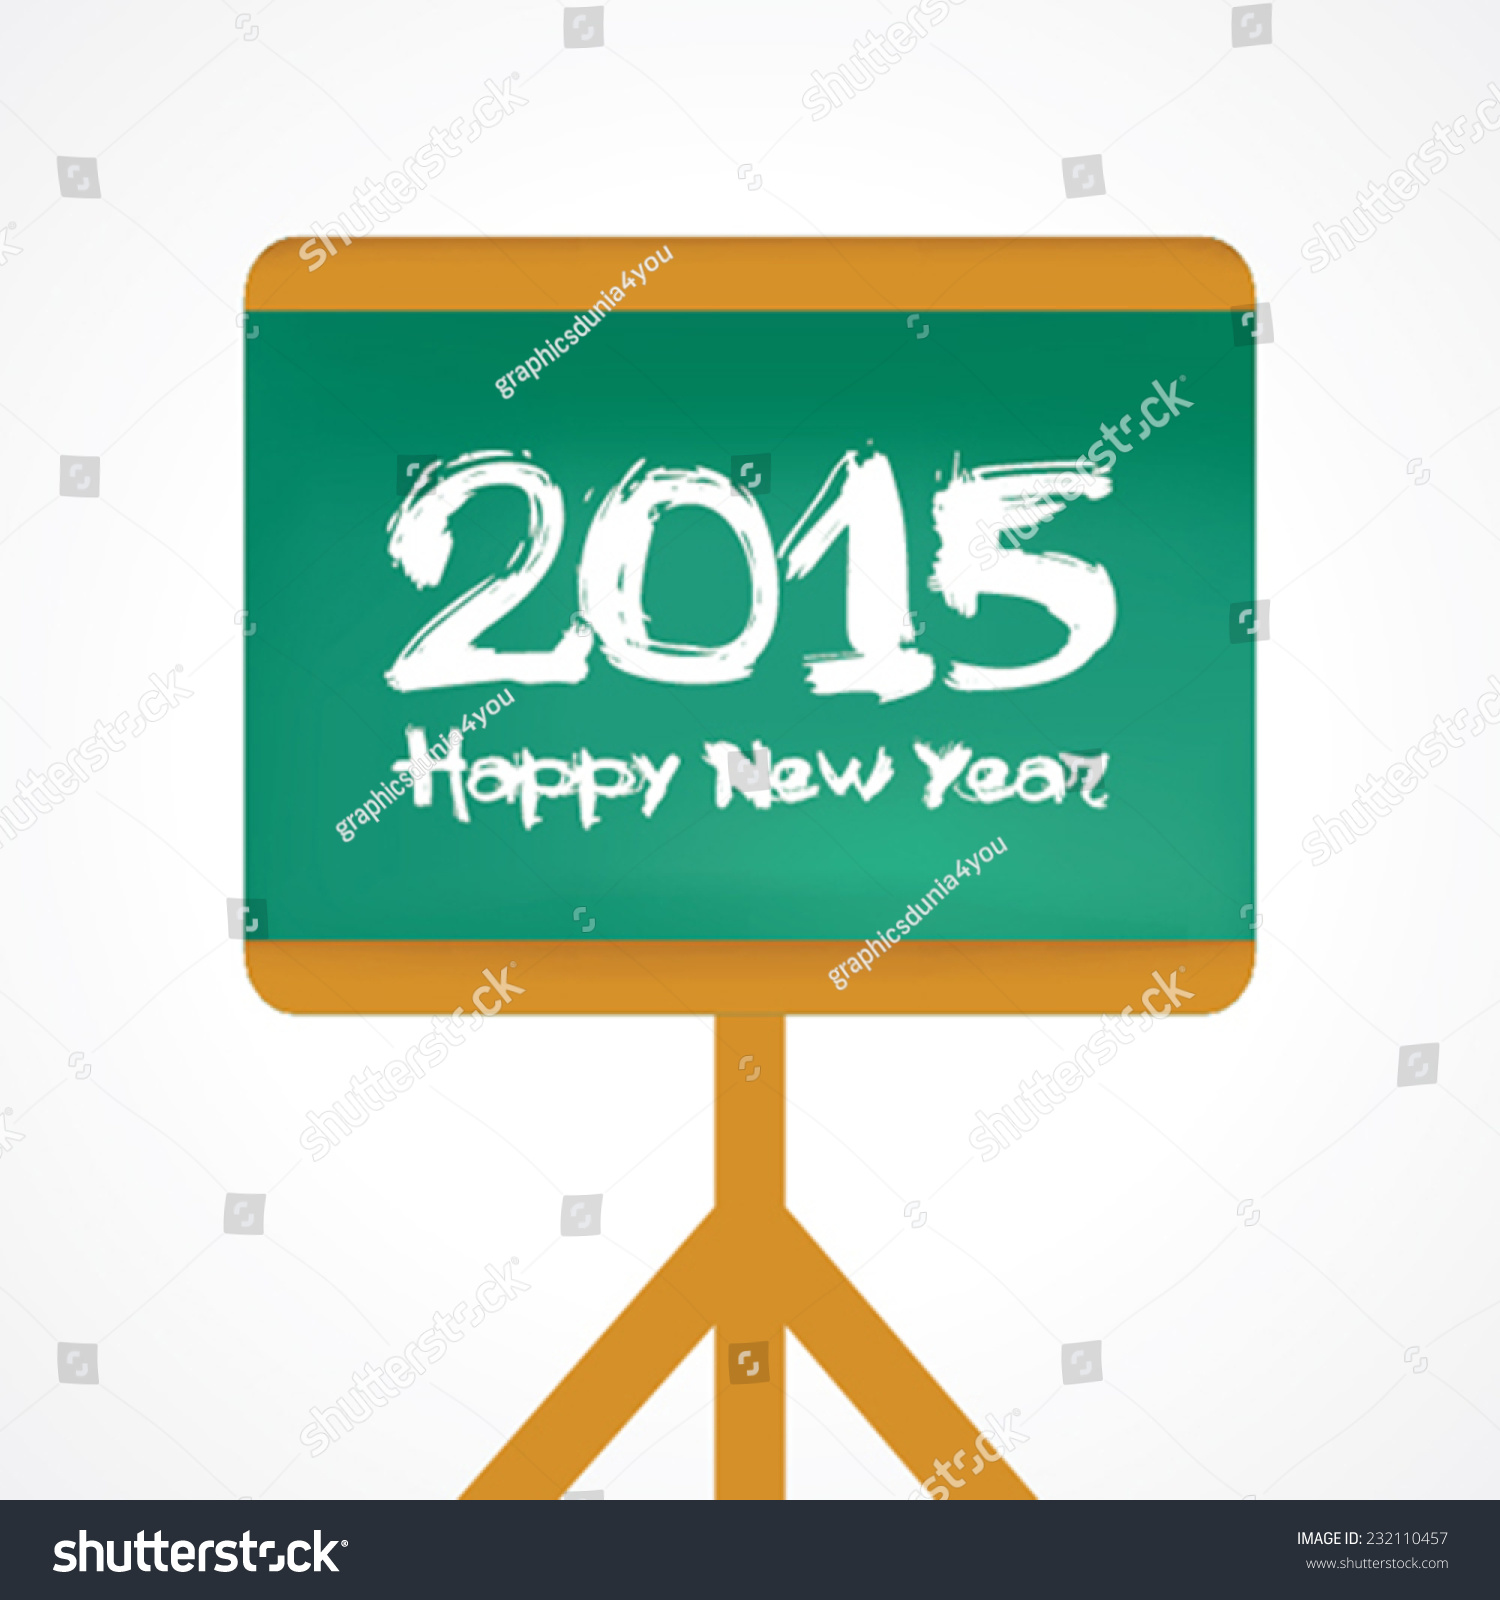 Creative greeting new year 2015 stock stock vector 232110457 creative greeting for new year 2015 stock vector kristyandbryce Gallery